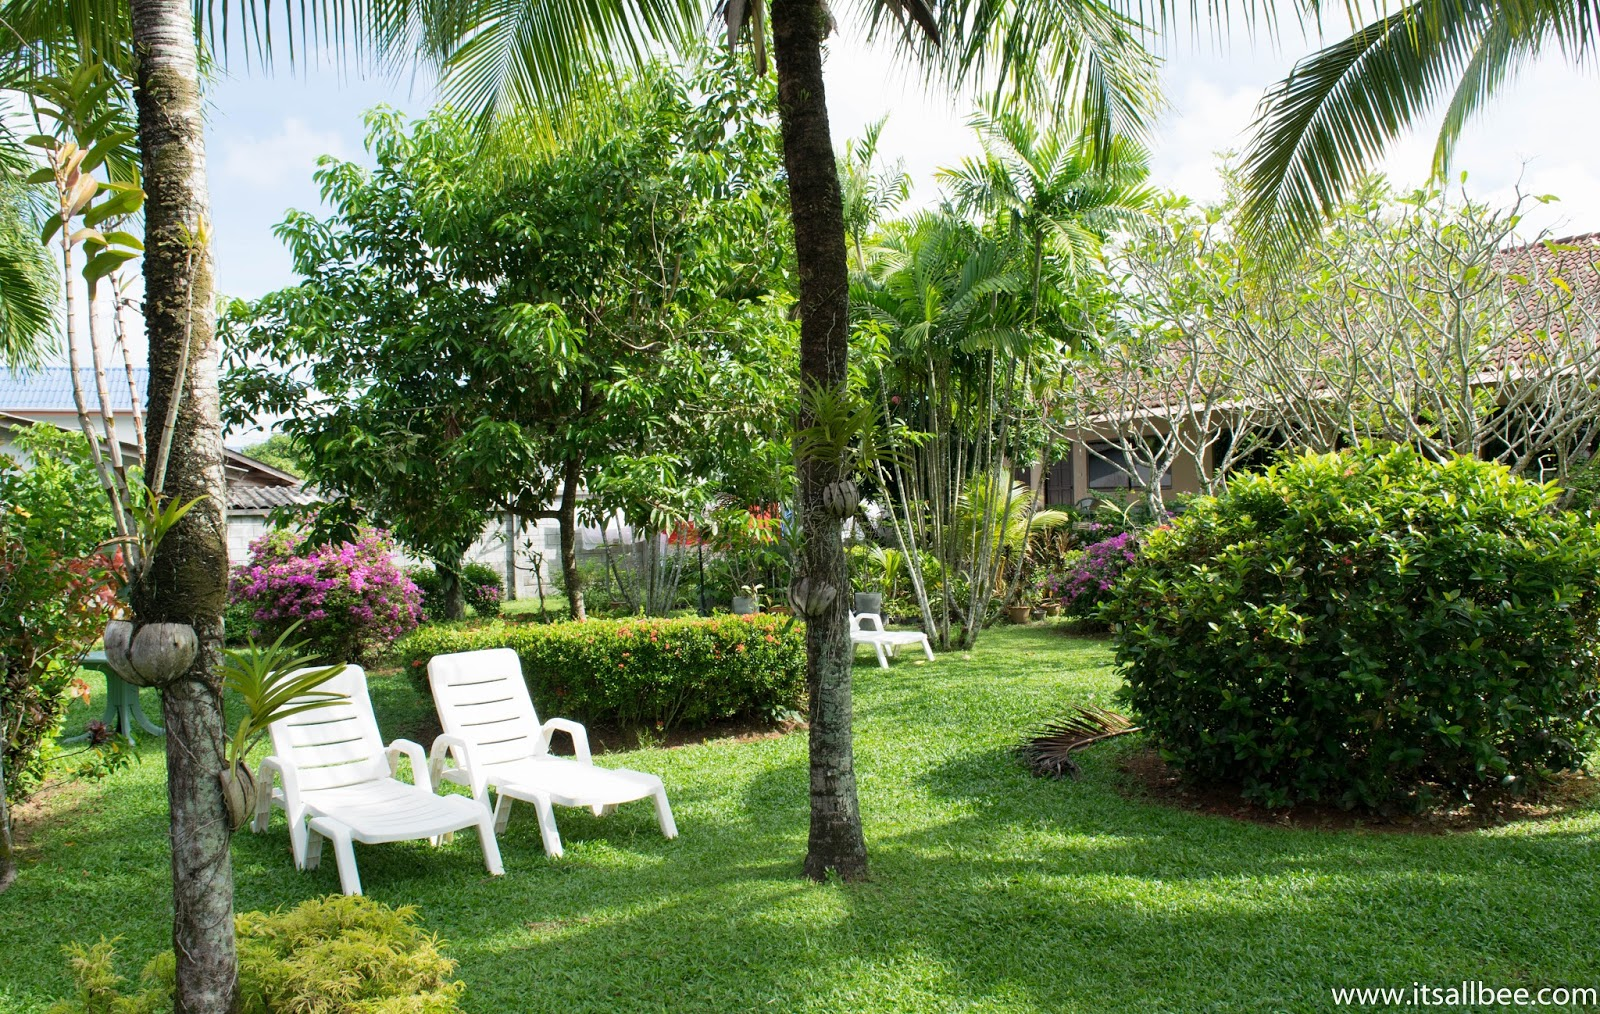 Best Place To Stay In Phuket + Gold Diggers Resort Review